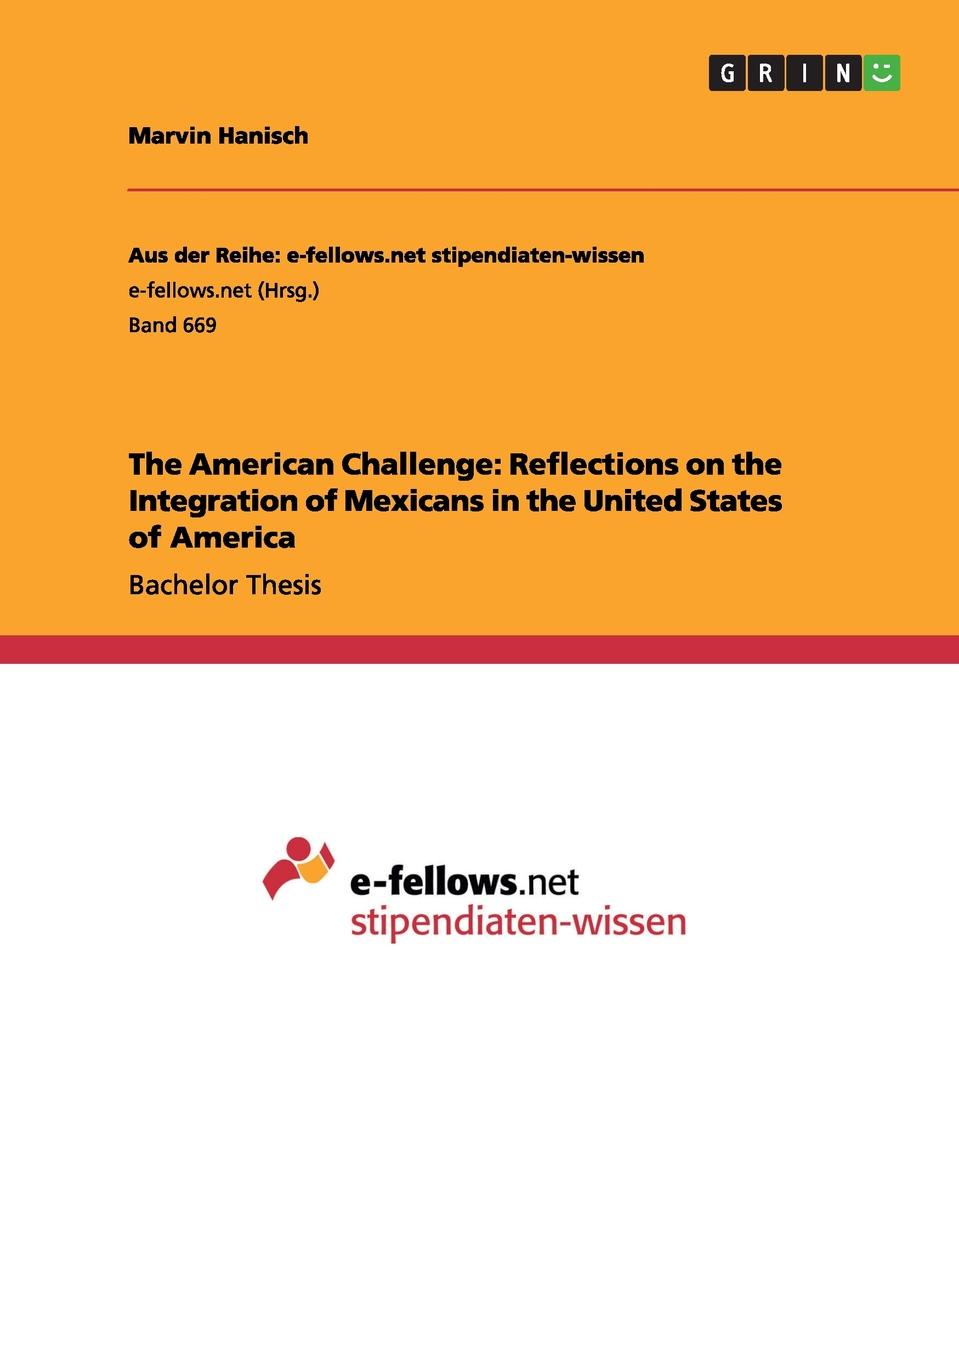 Marvin Hanisch The American Challenge. Reflections on the Integration of Mexicans in the United States of America lennart reinhold job motivation and culture a cross cultural comparison of germany and the united states